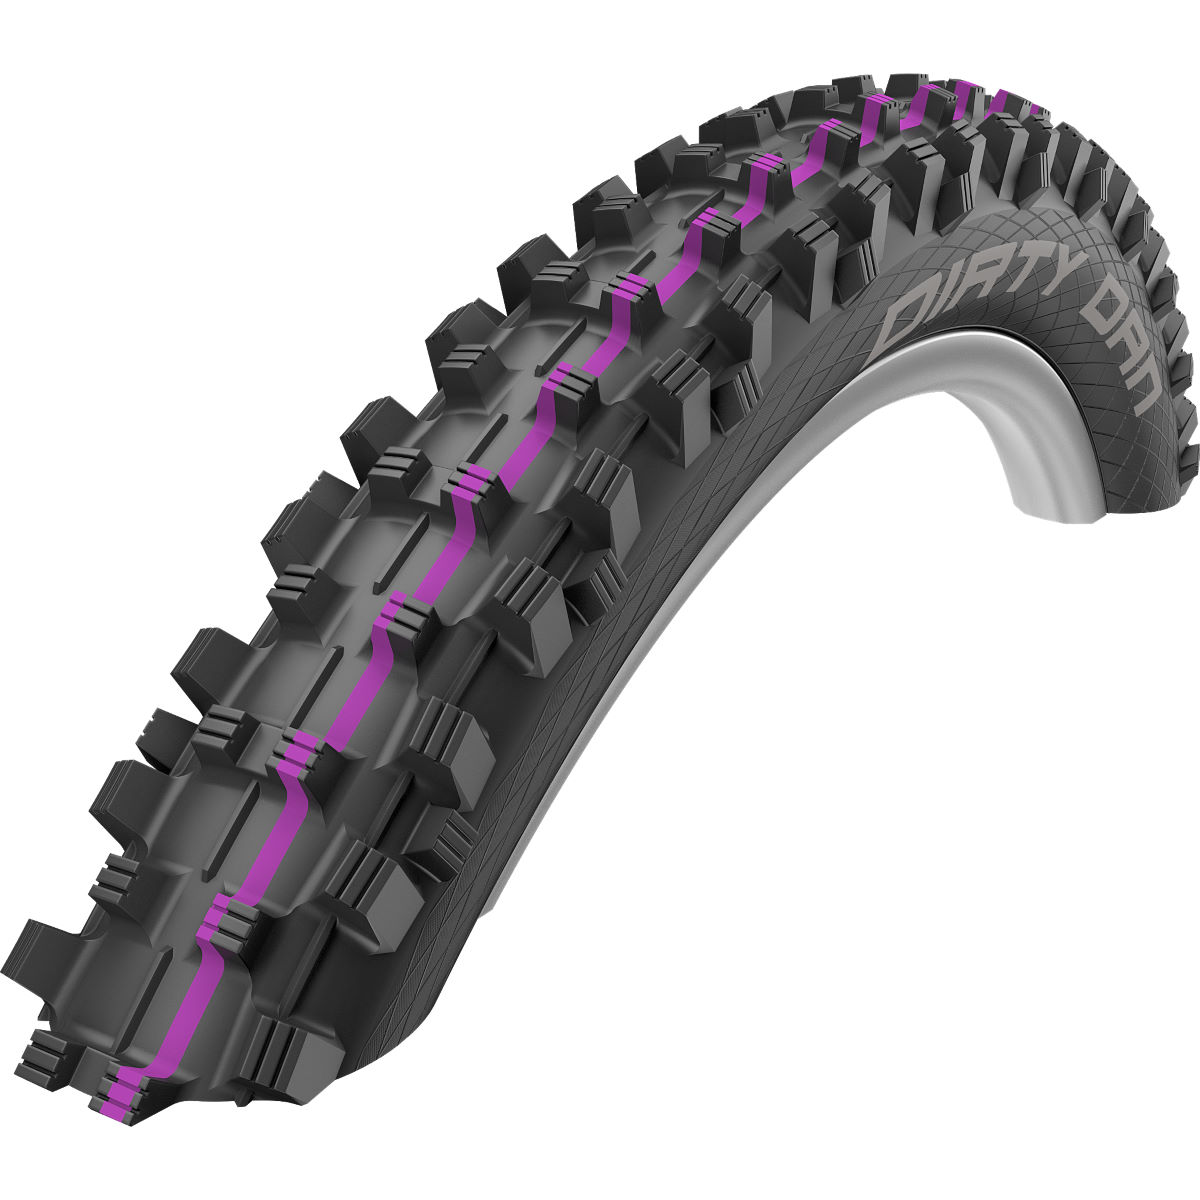 Pneu VTT Schwalbe Dirty Dan Addix Downhill - 2.35'' Black/Purple